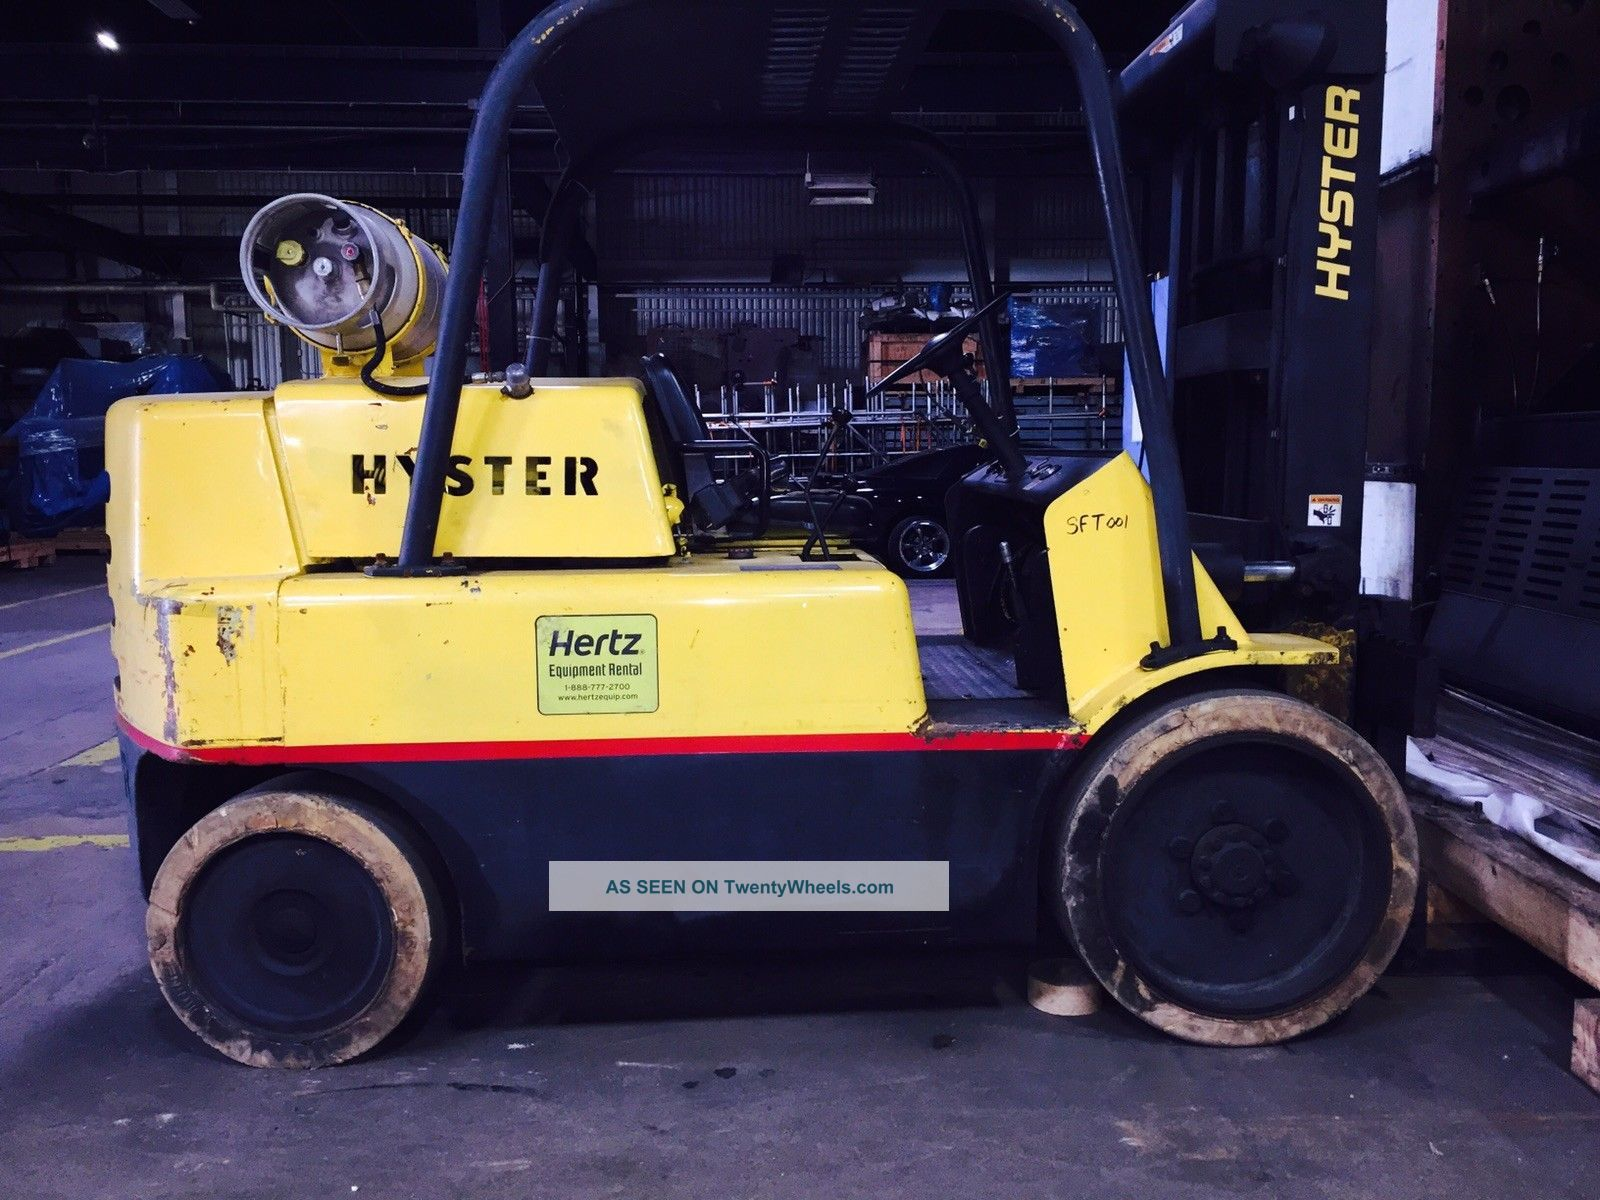 Hyster Forklift 15000lbs.  Propane/natural Gas Forklifts photo